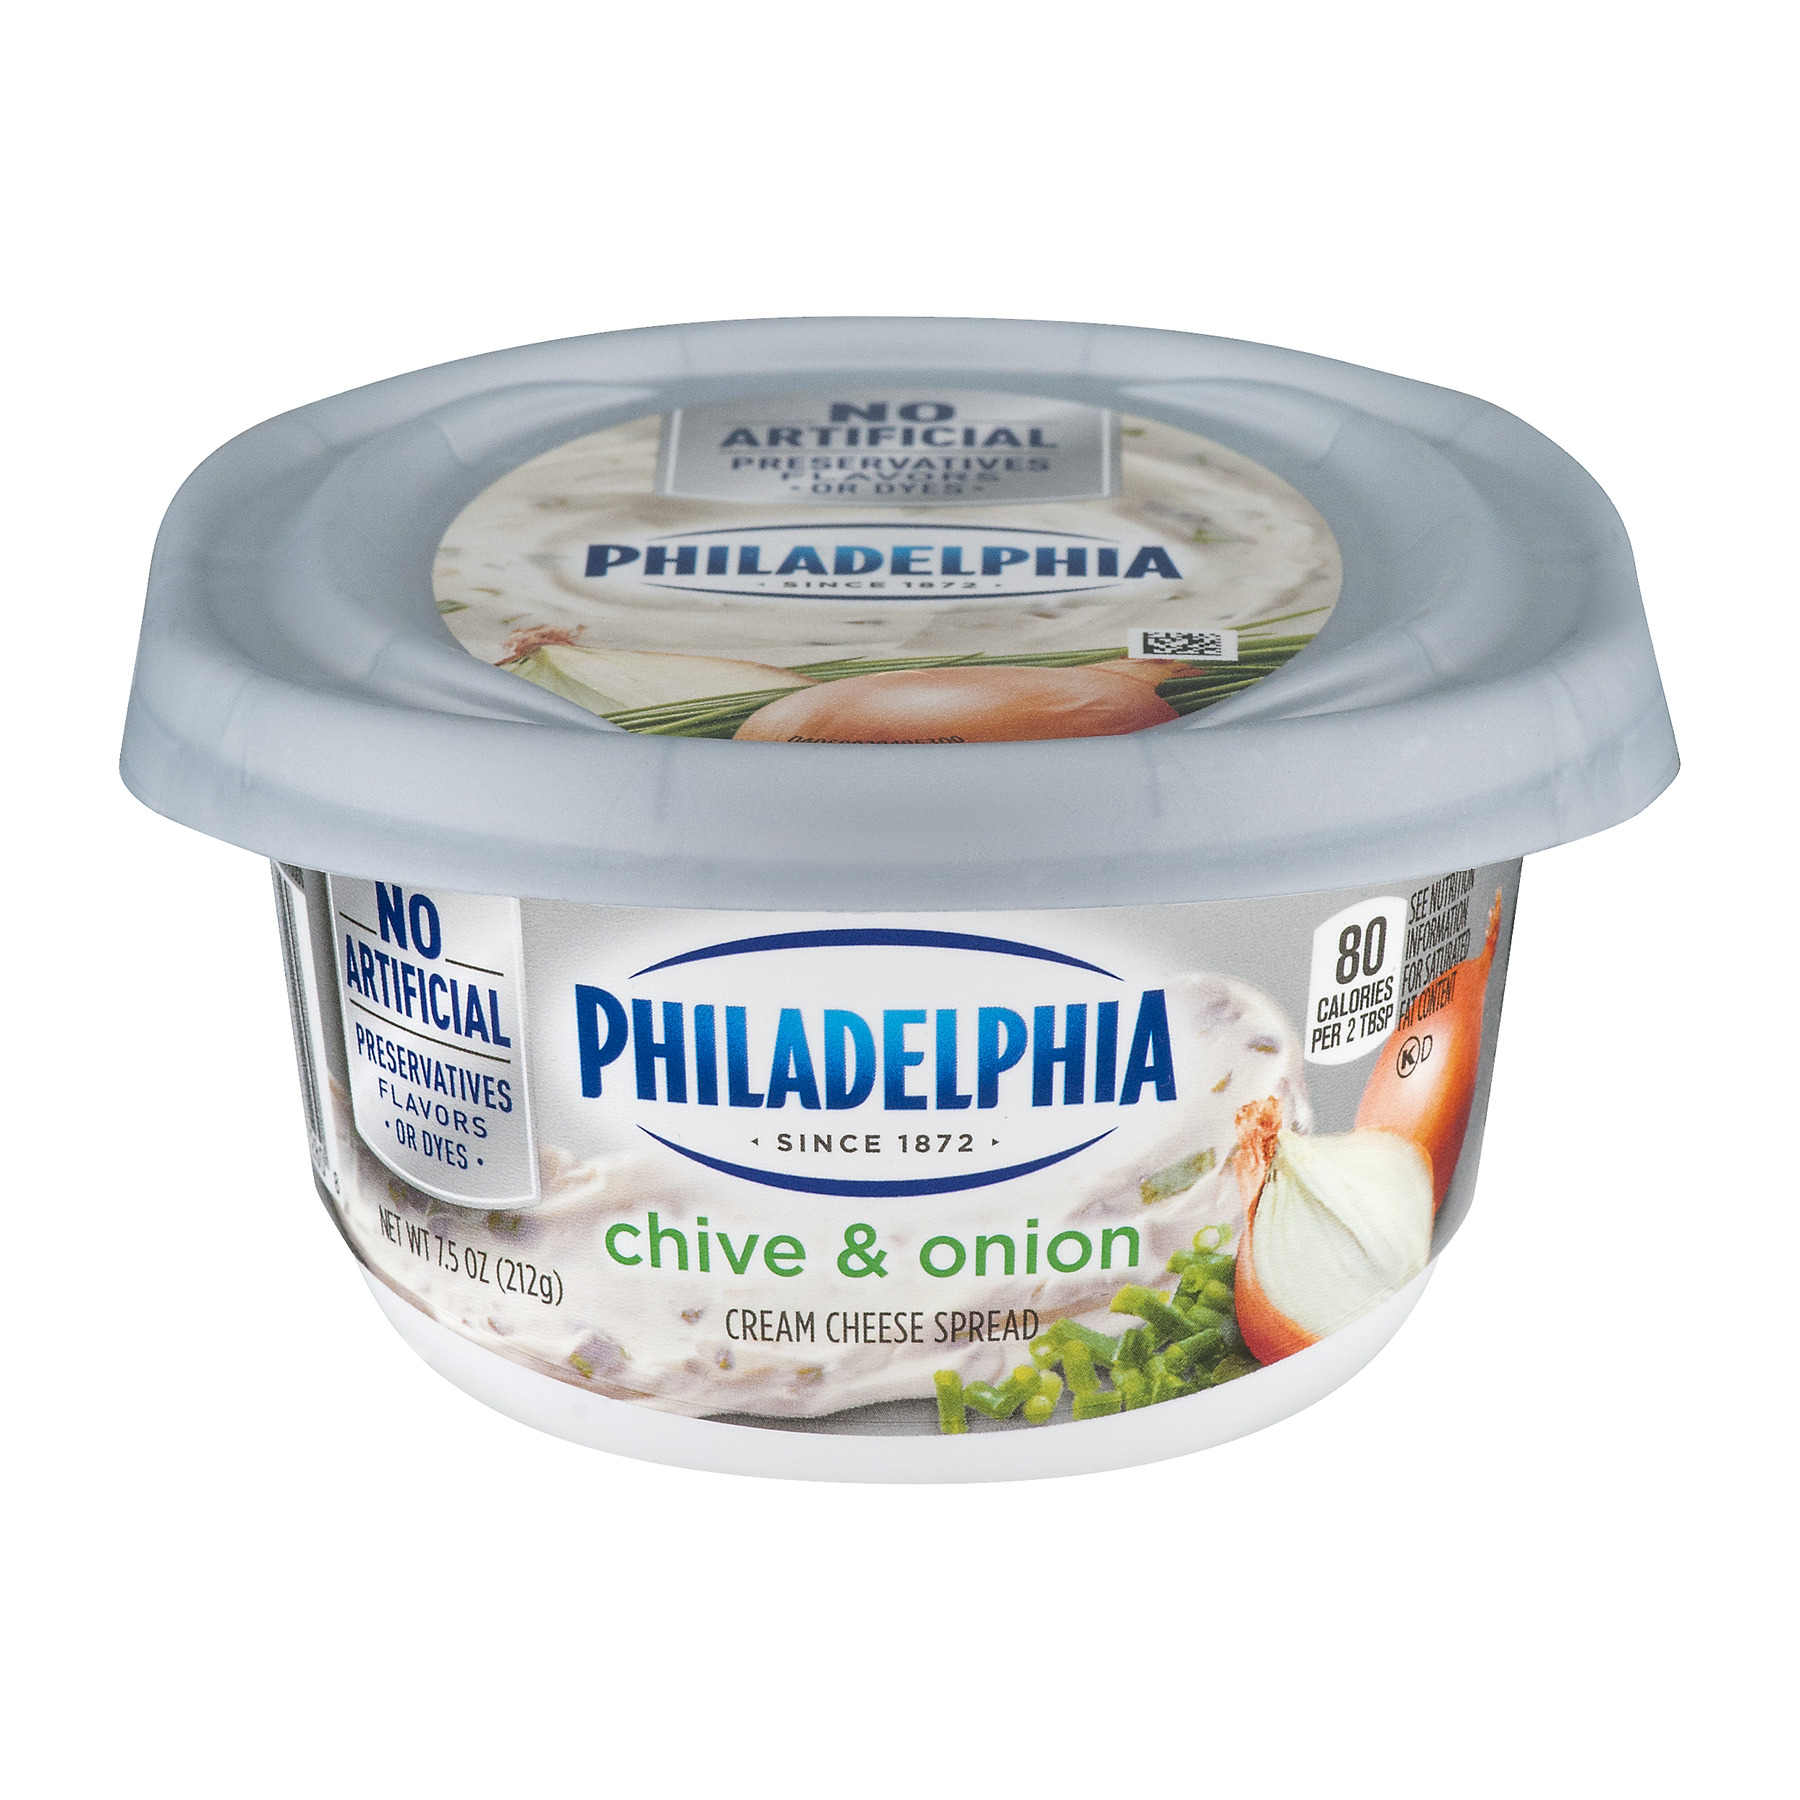 Philadelphia Cream Cheese Spread Chive & Onion, 7.5 OZ